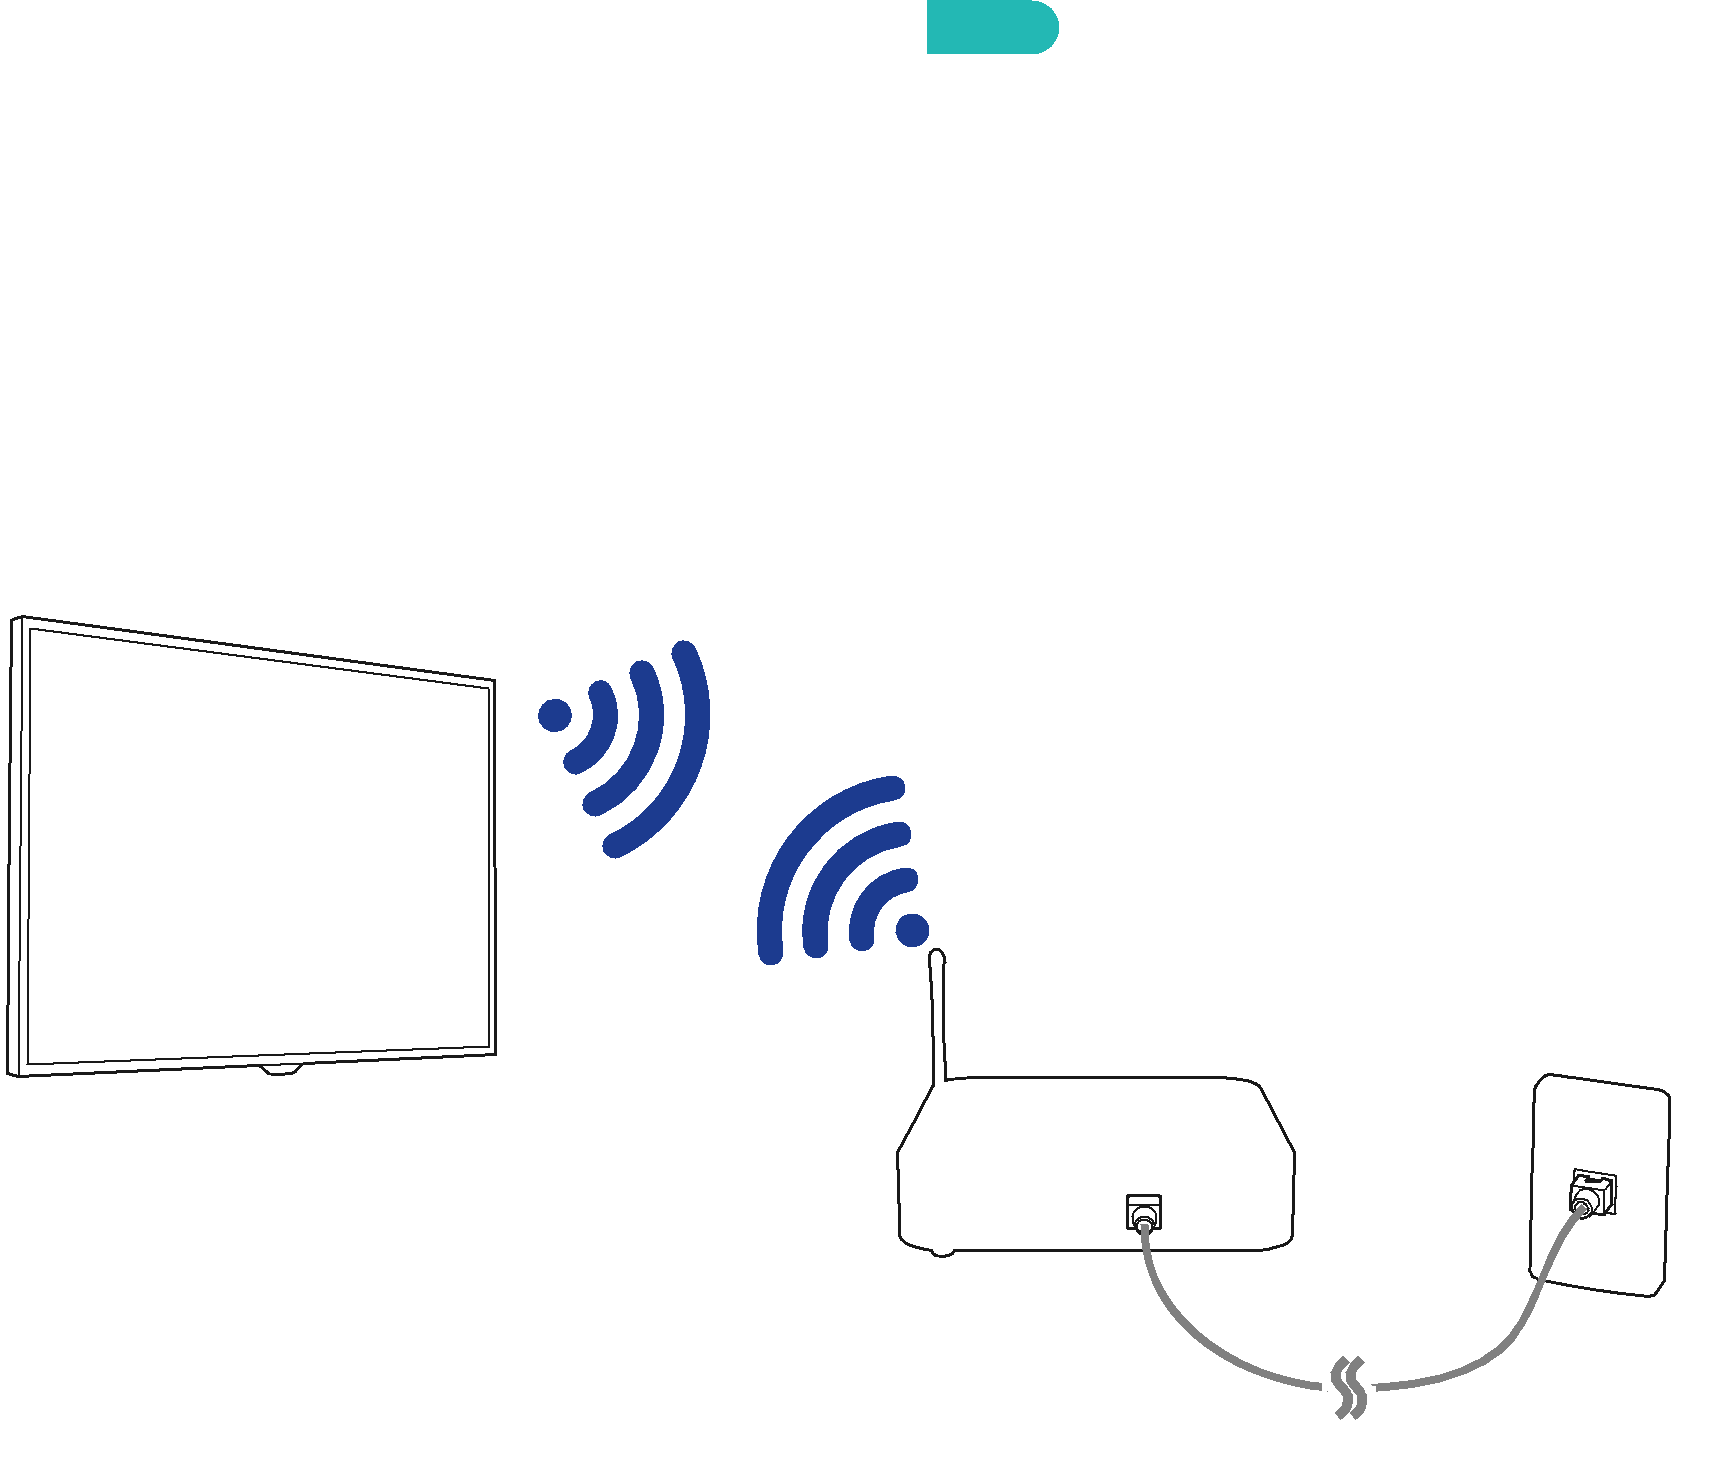 hight resolution of connecting to a wired internet network automatically